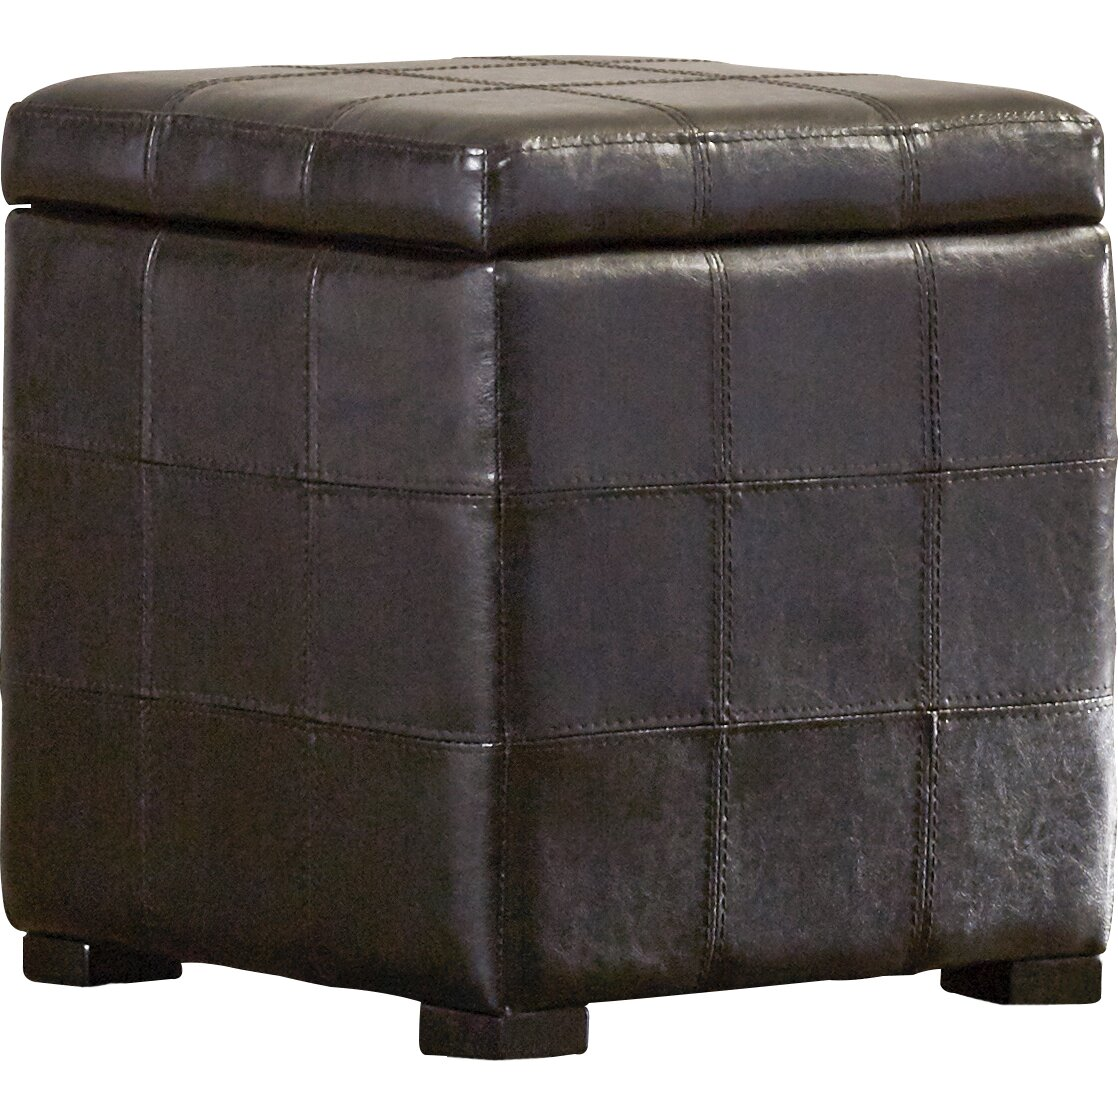 Coffee table with nesting ottomans - Trout River 3 Piece Coffee Table And Ottoman Set